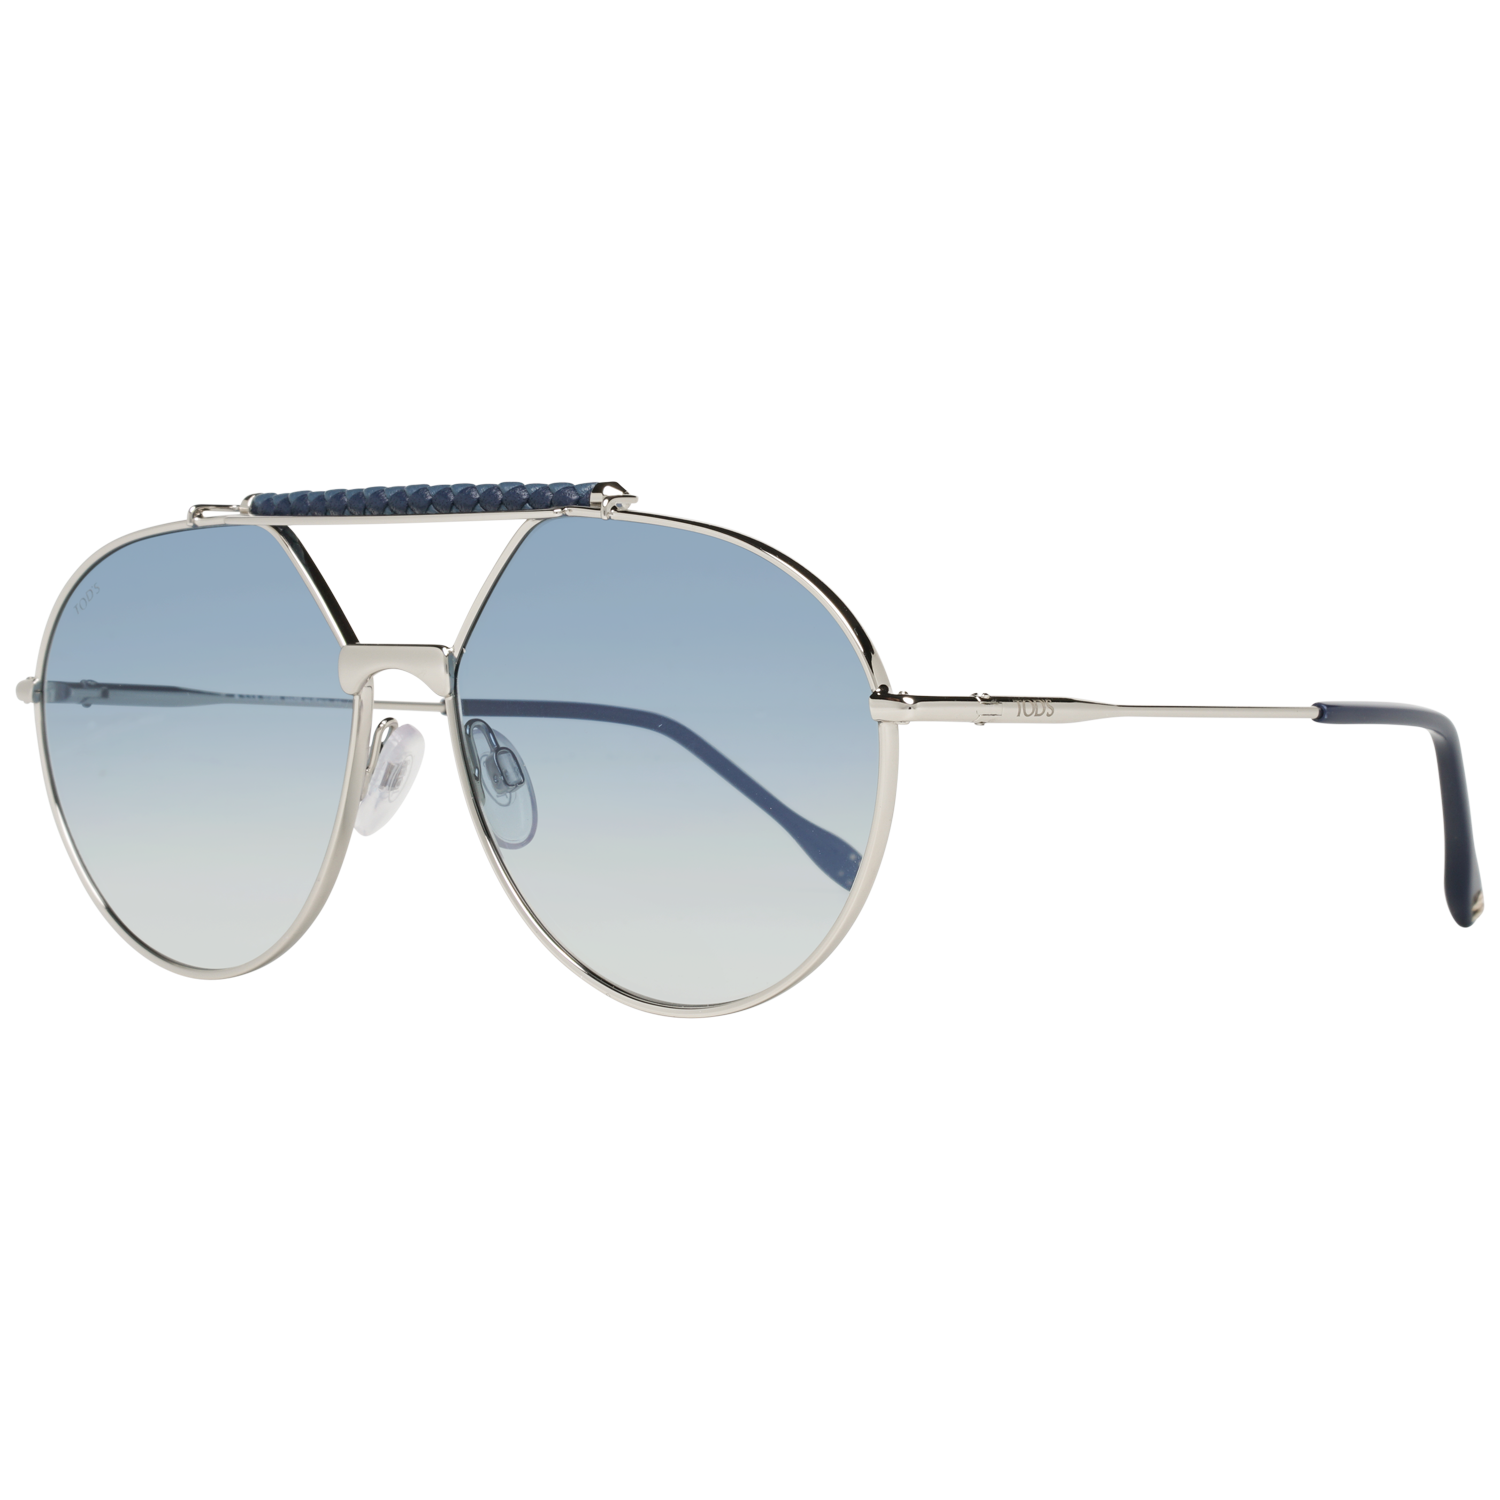 Tods Sunglasses TO0235 18W 59 Silver